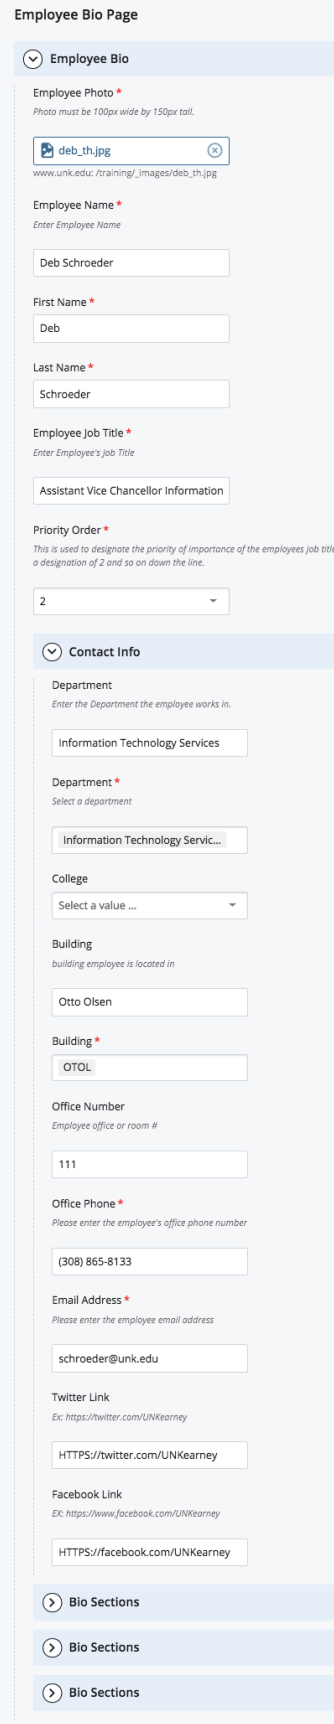 Employee Bio Page Type Backend